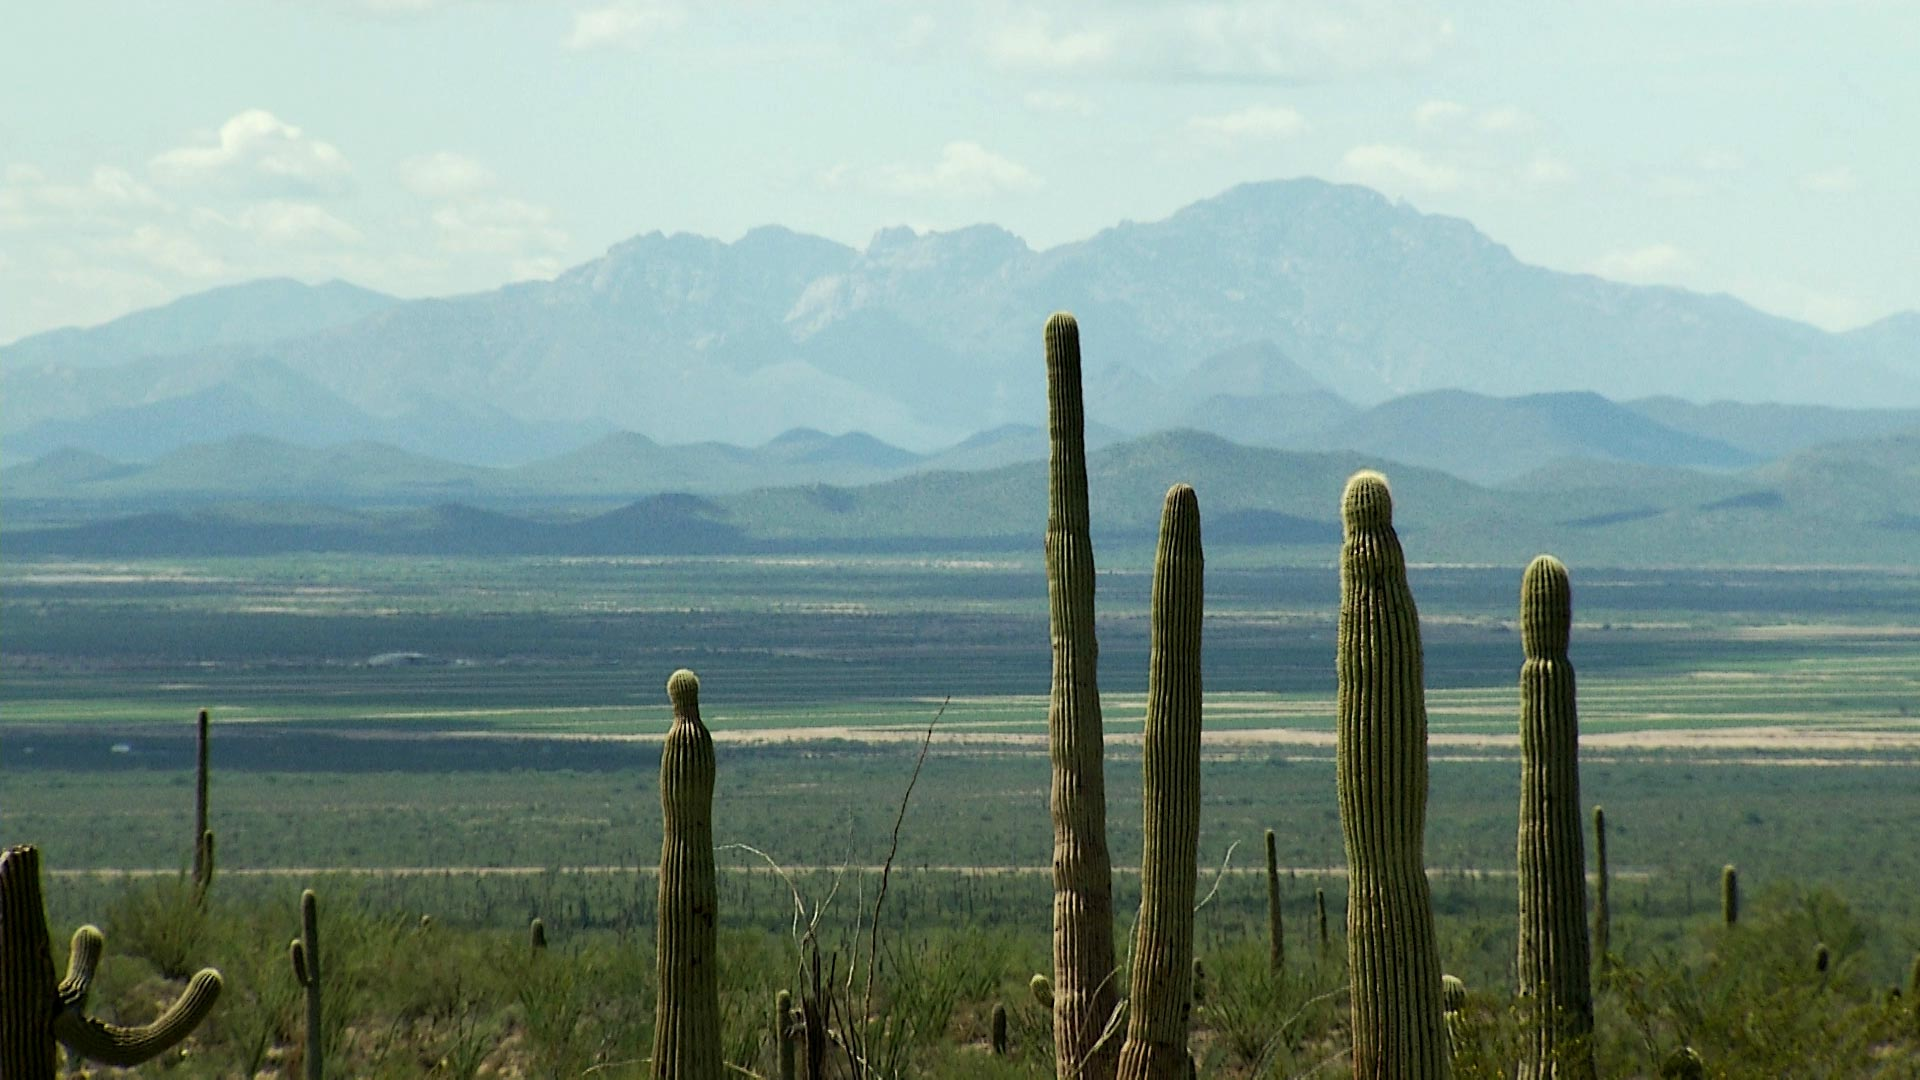 A file image of the Sonoran Desert.